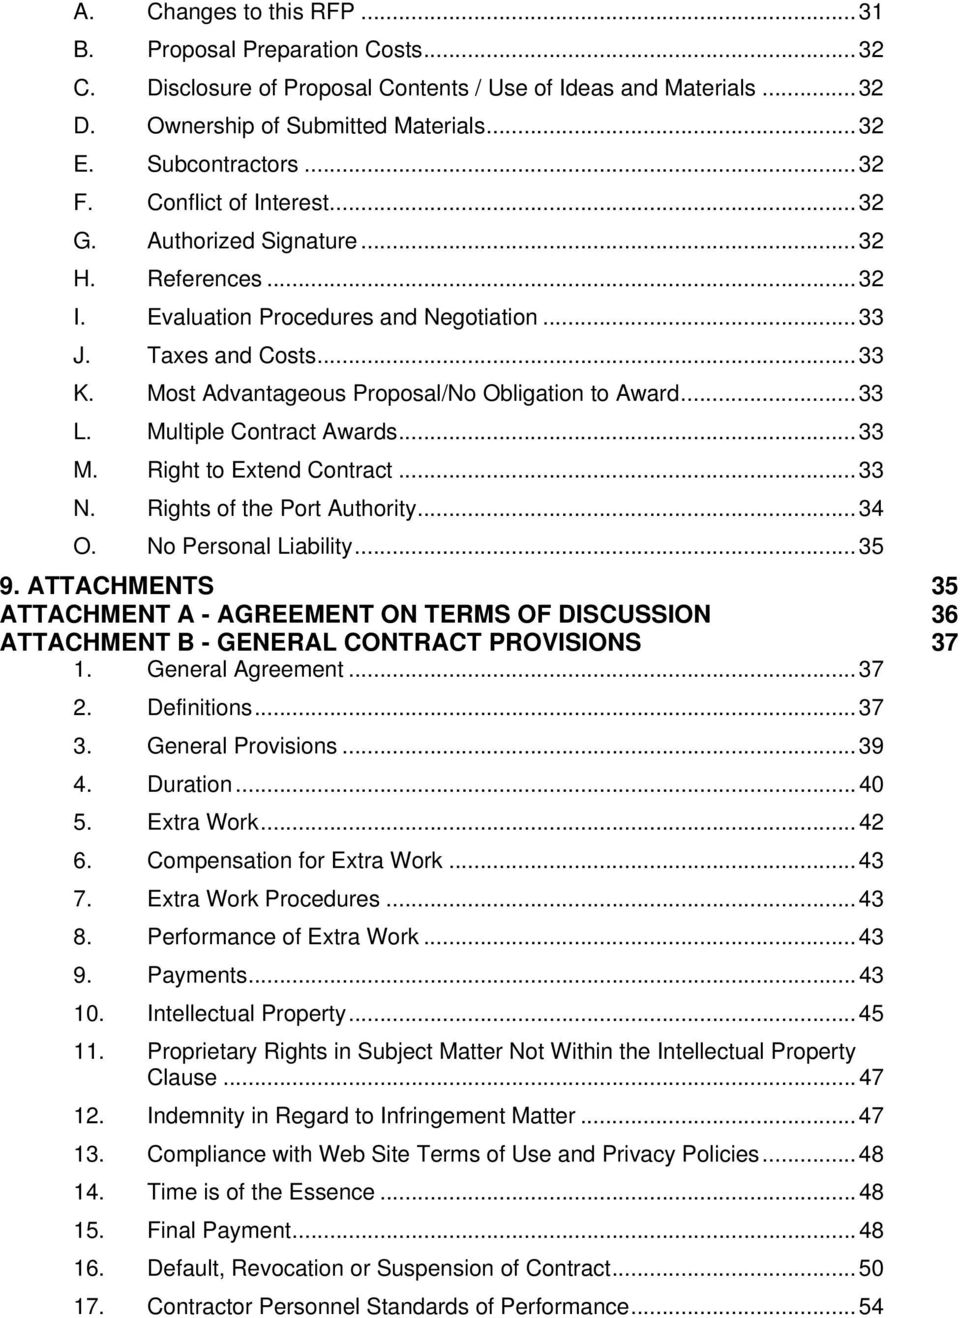 Most Advantageous Proposal/No Obligation to Award... 33 L. Multiple Contract Awards... 33 M. Right to Extend Contract... 33 N. Rights of the Port Authority... 34 O. No Personal Liability... 35 9.